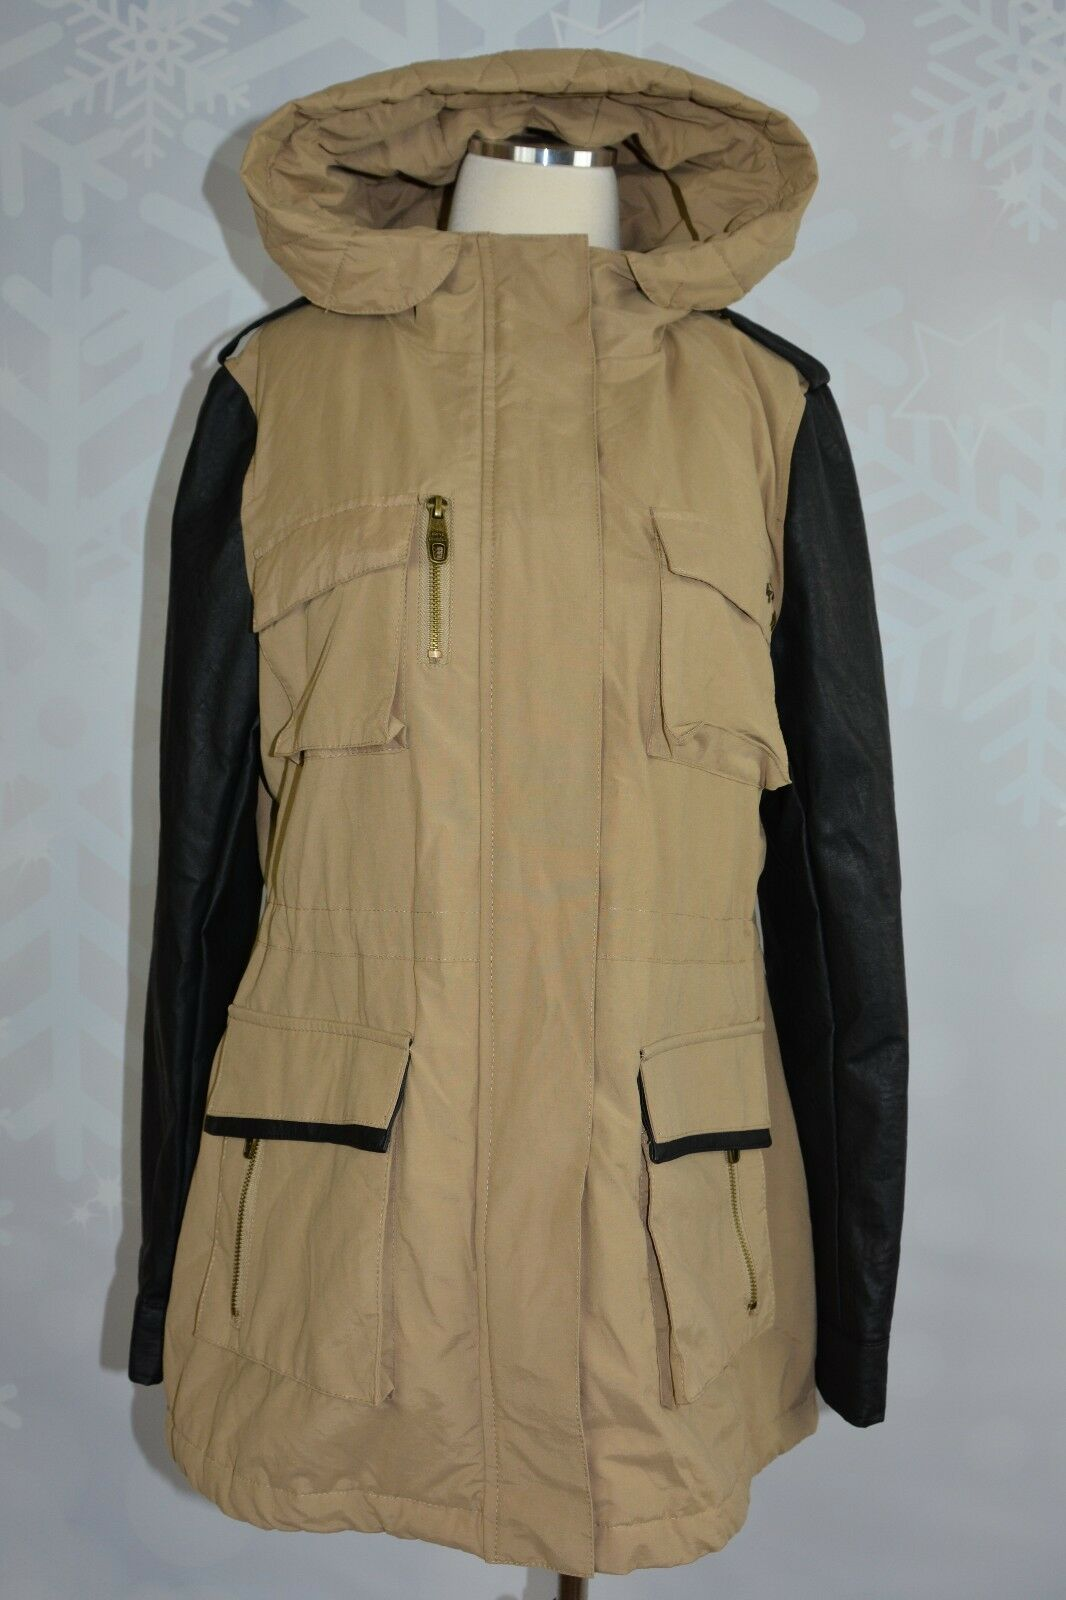 047cf244 Steve Madden size L Sand colord anorak with faux leather sleeves ...